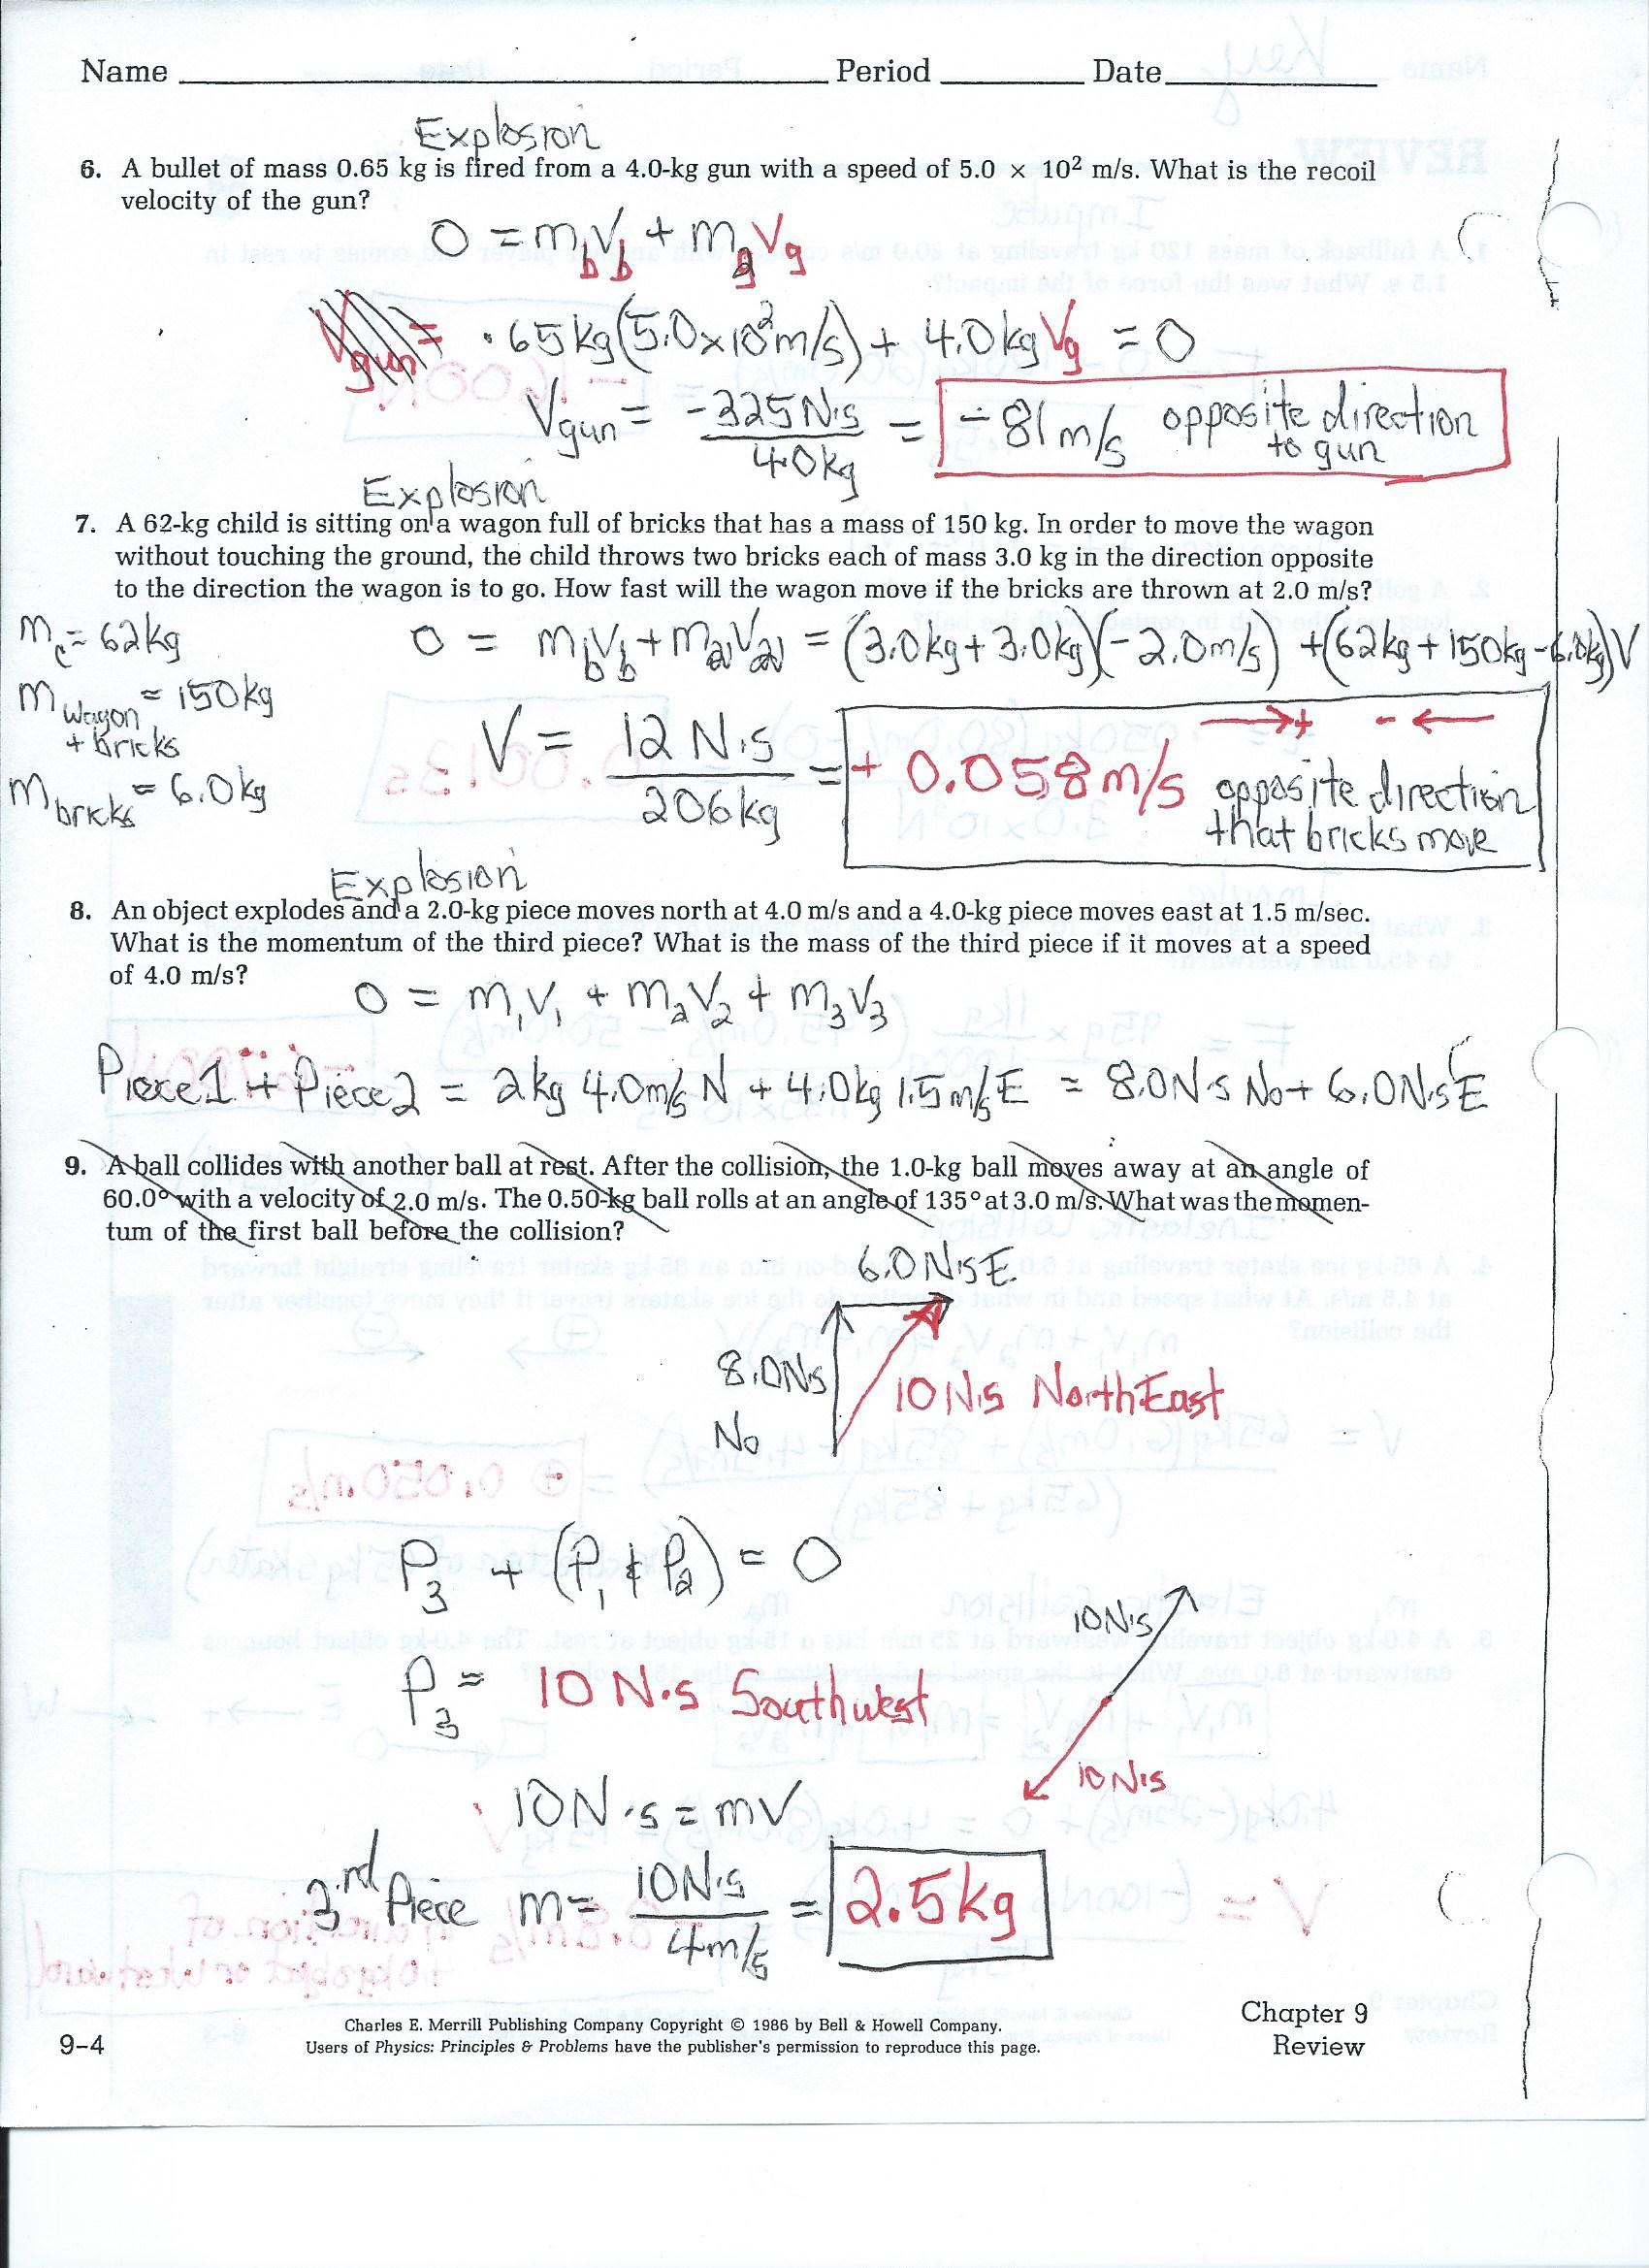 Worksheets Conceptual Physics Worksheets south pasadena high school chp 7 review worksheet answers page 2 jpg